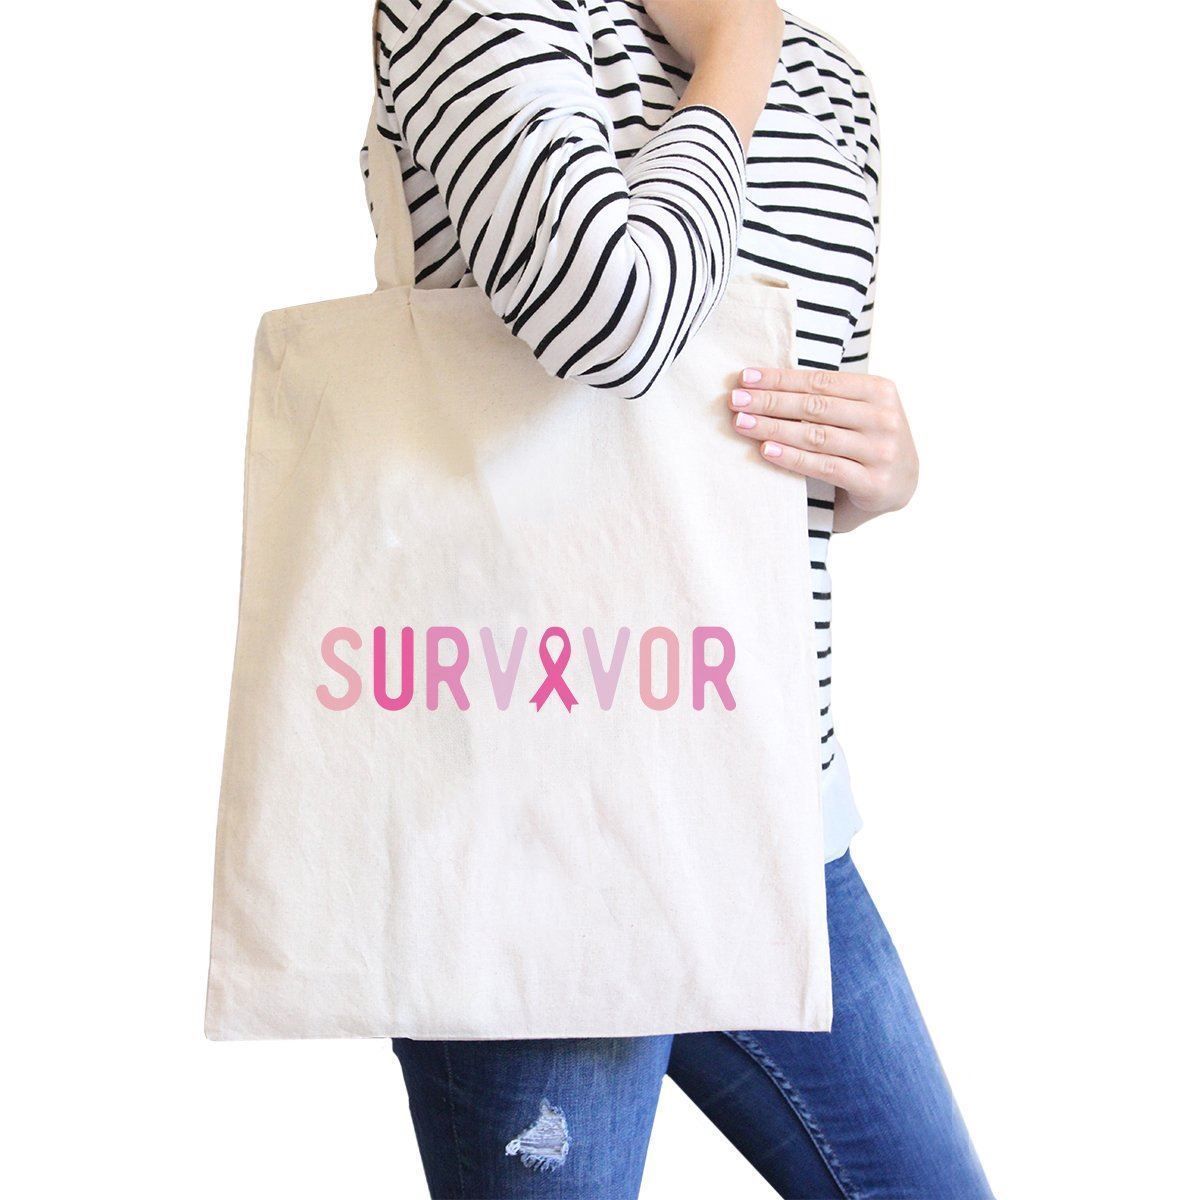 Primary image for Survivor Natural Canvas Bags